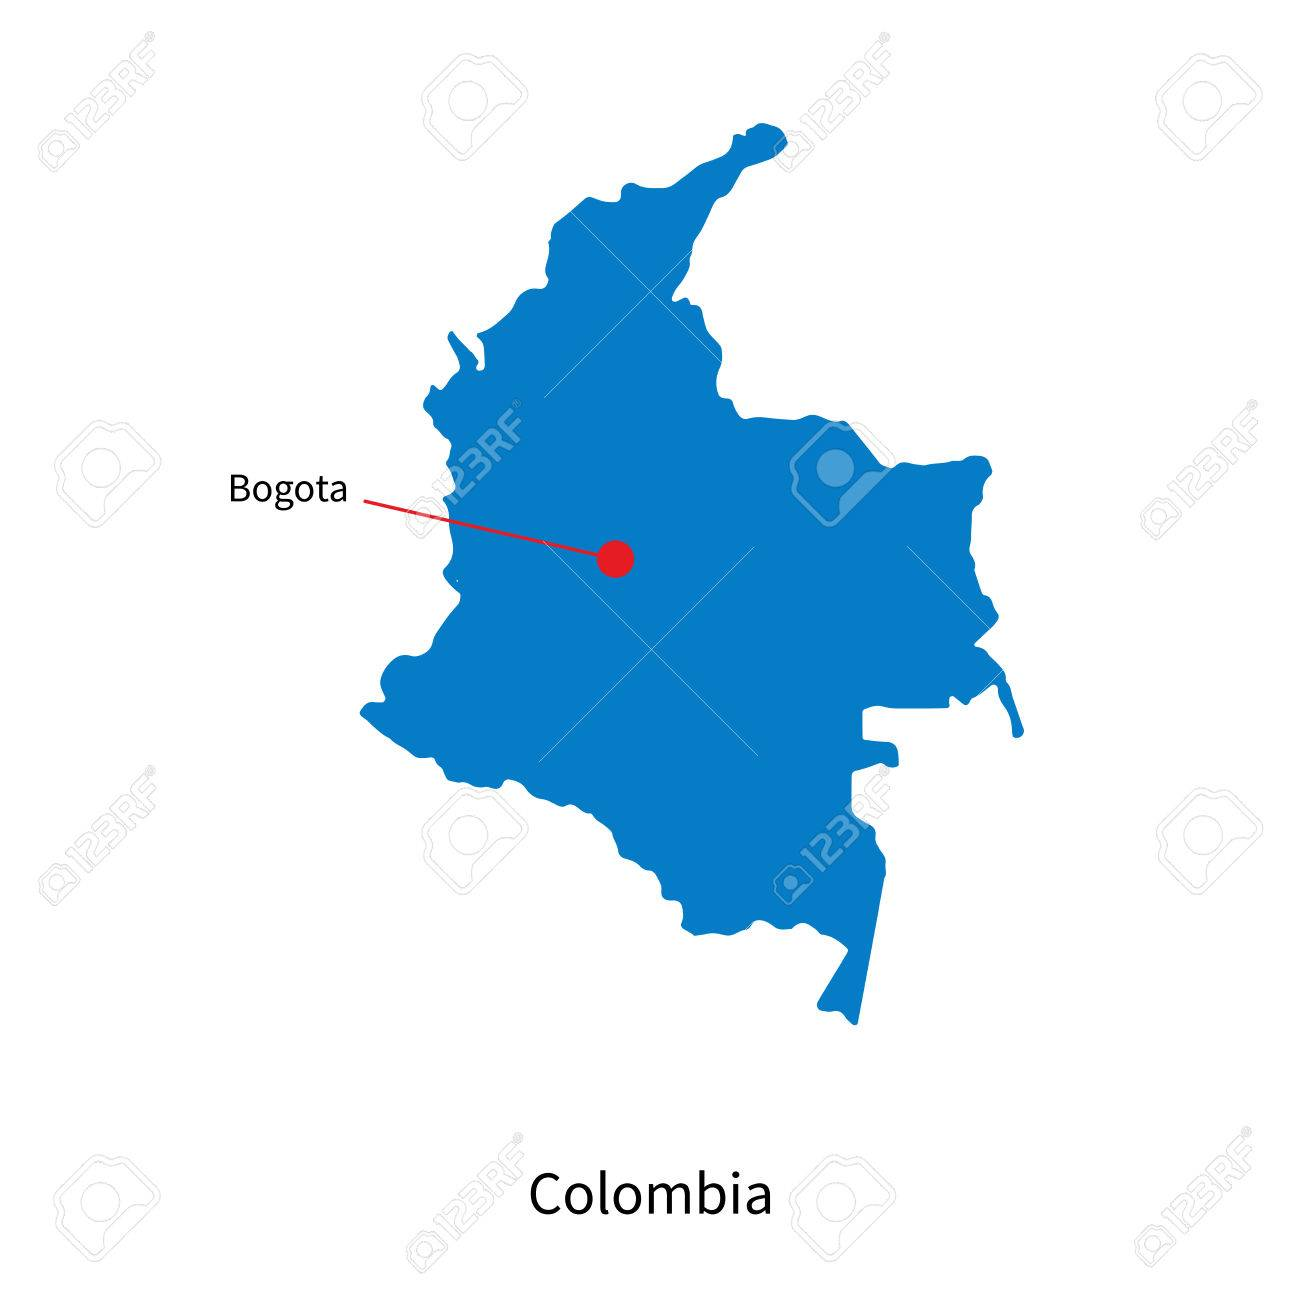 Detailed vector map of Colombia and capital city Bogota